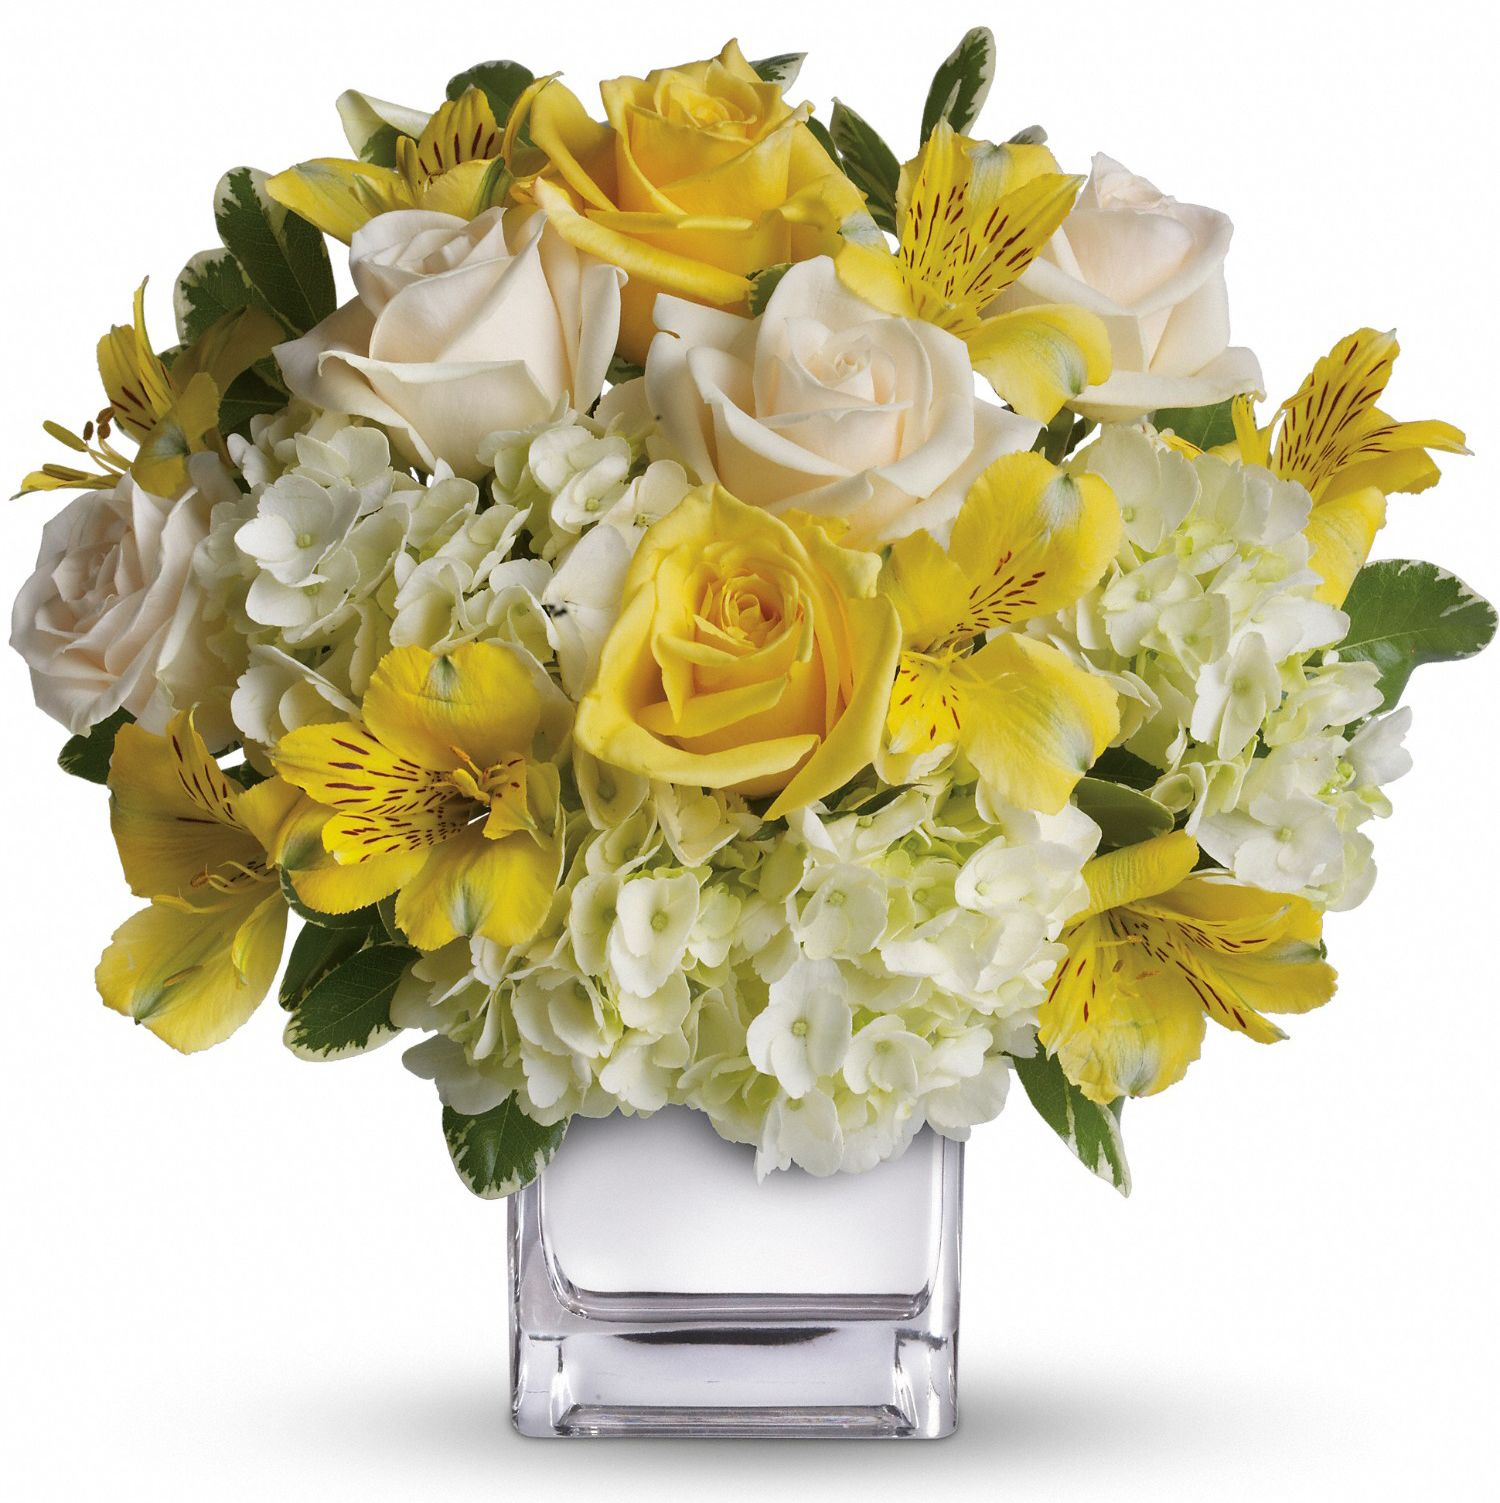 Flowers columbus offers same day and express flower